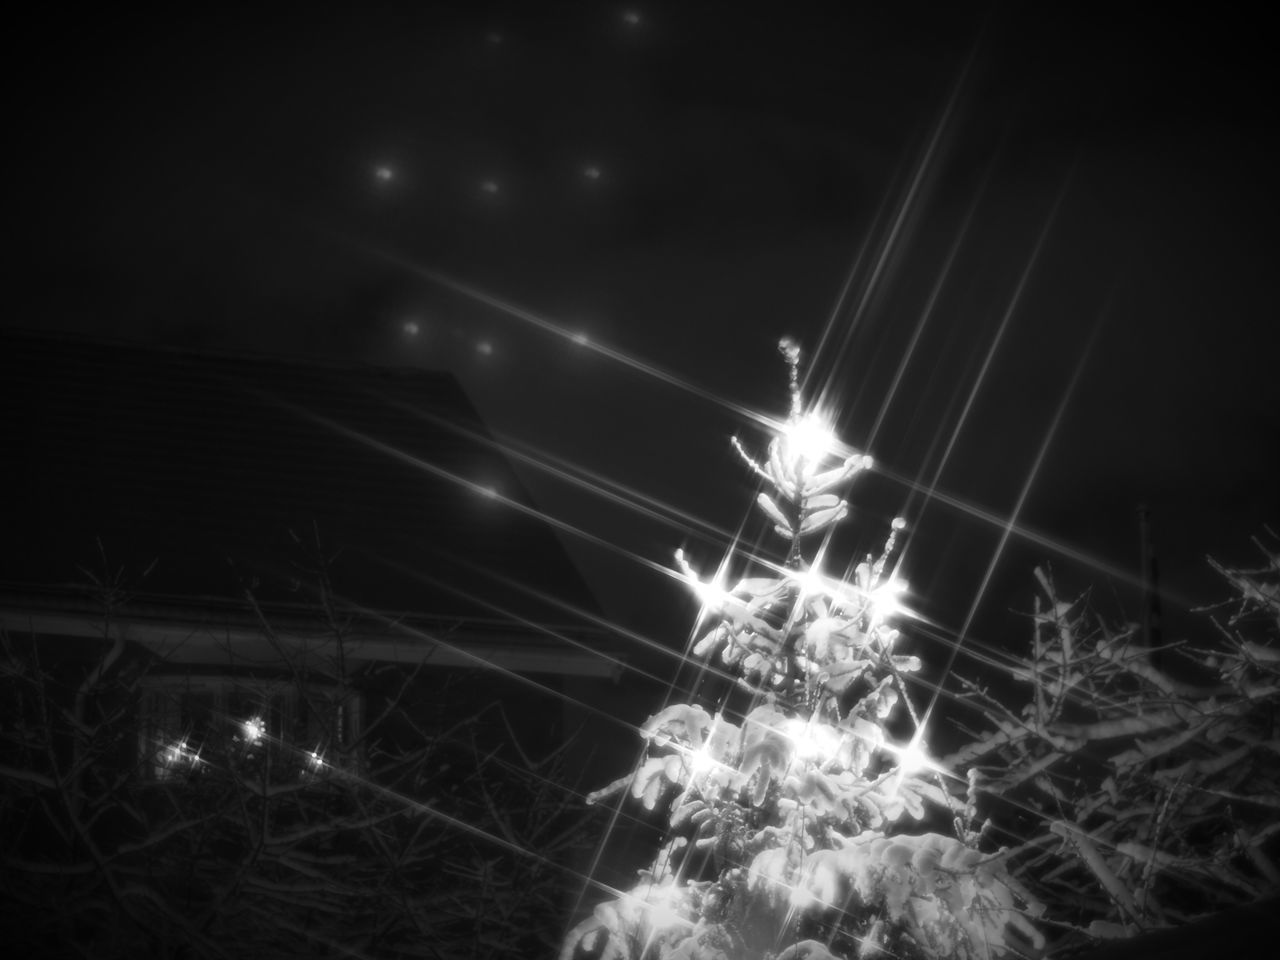 Longing for Christmas Illuminated Night No People Sparks Outdoors Tree Nature Star Filter Christmas Tree Christmas Lights Monochrome Black & White Black And White Blackandwhite